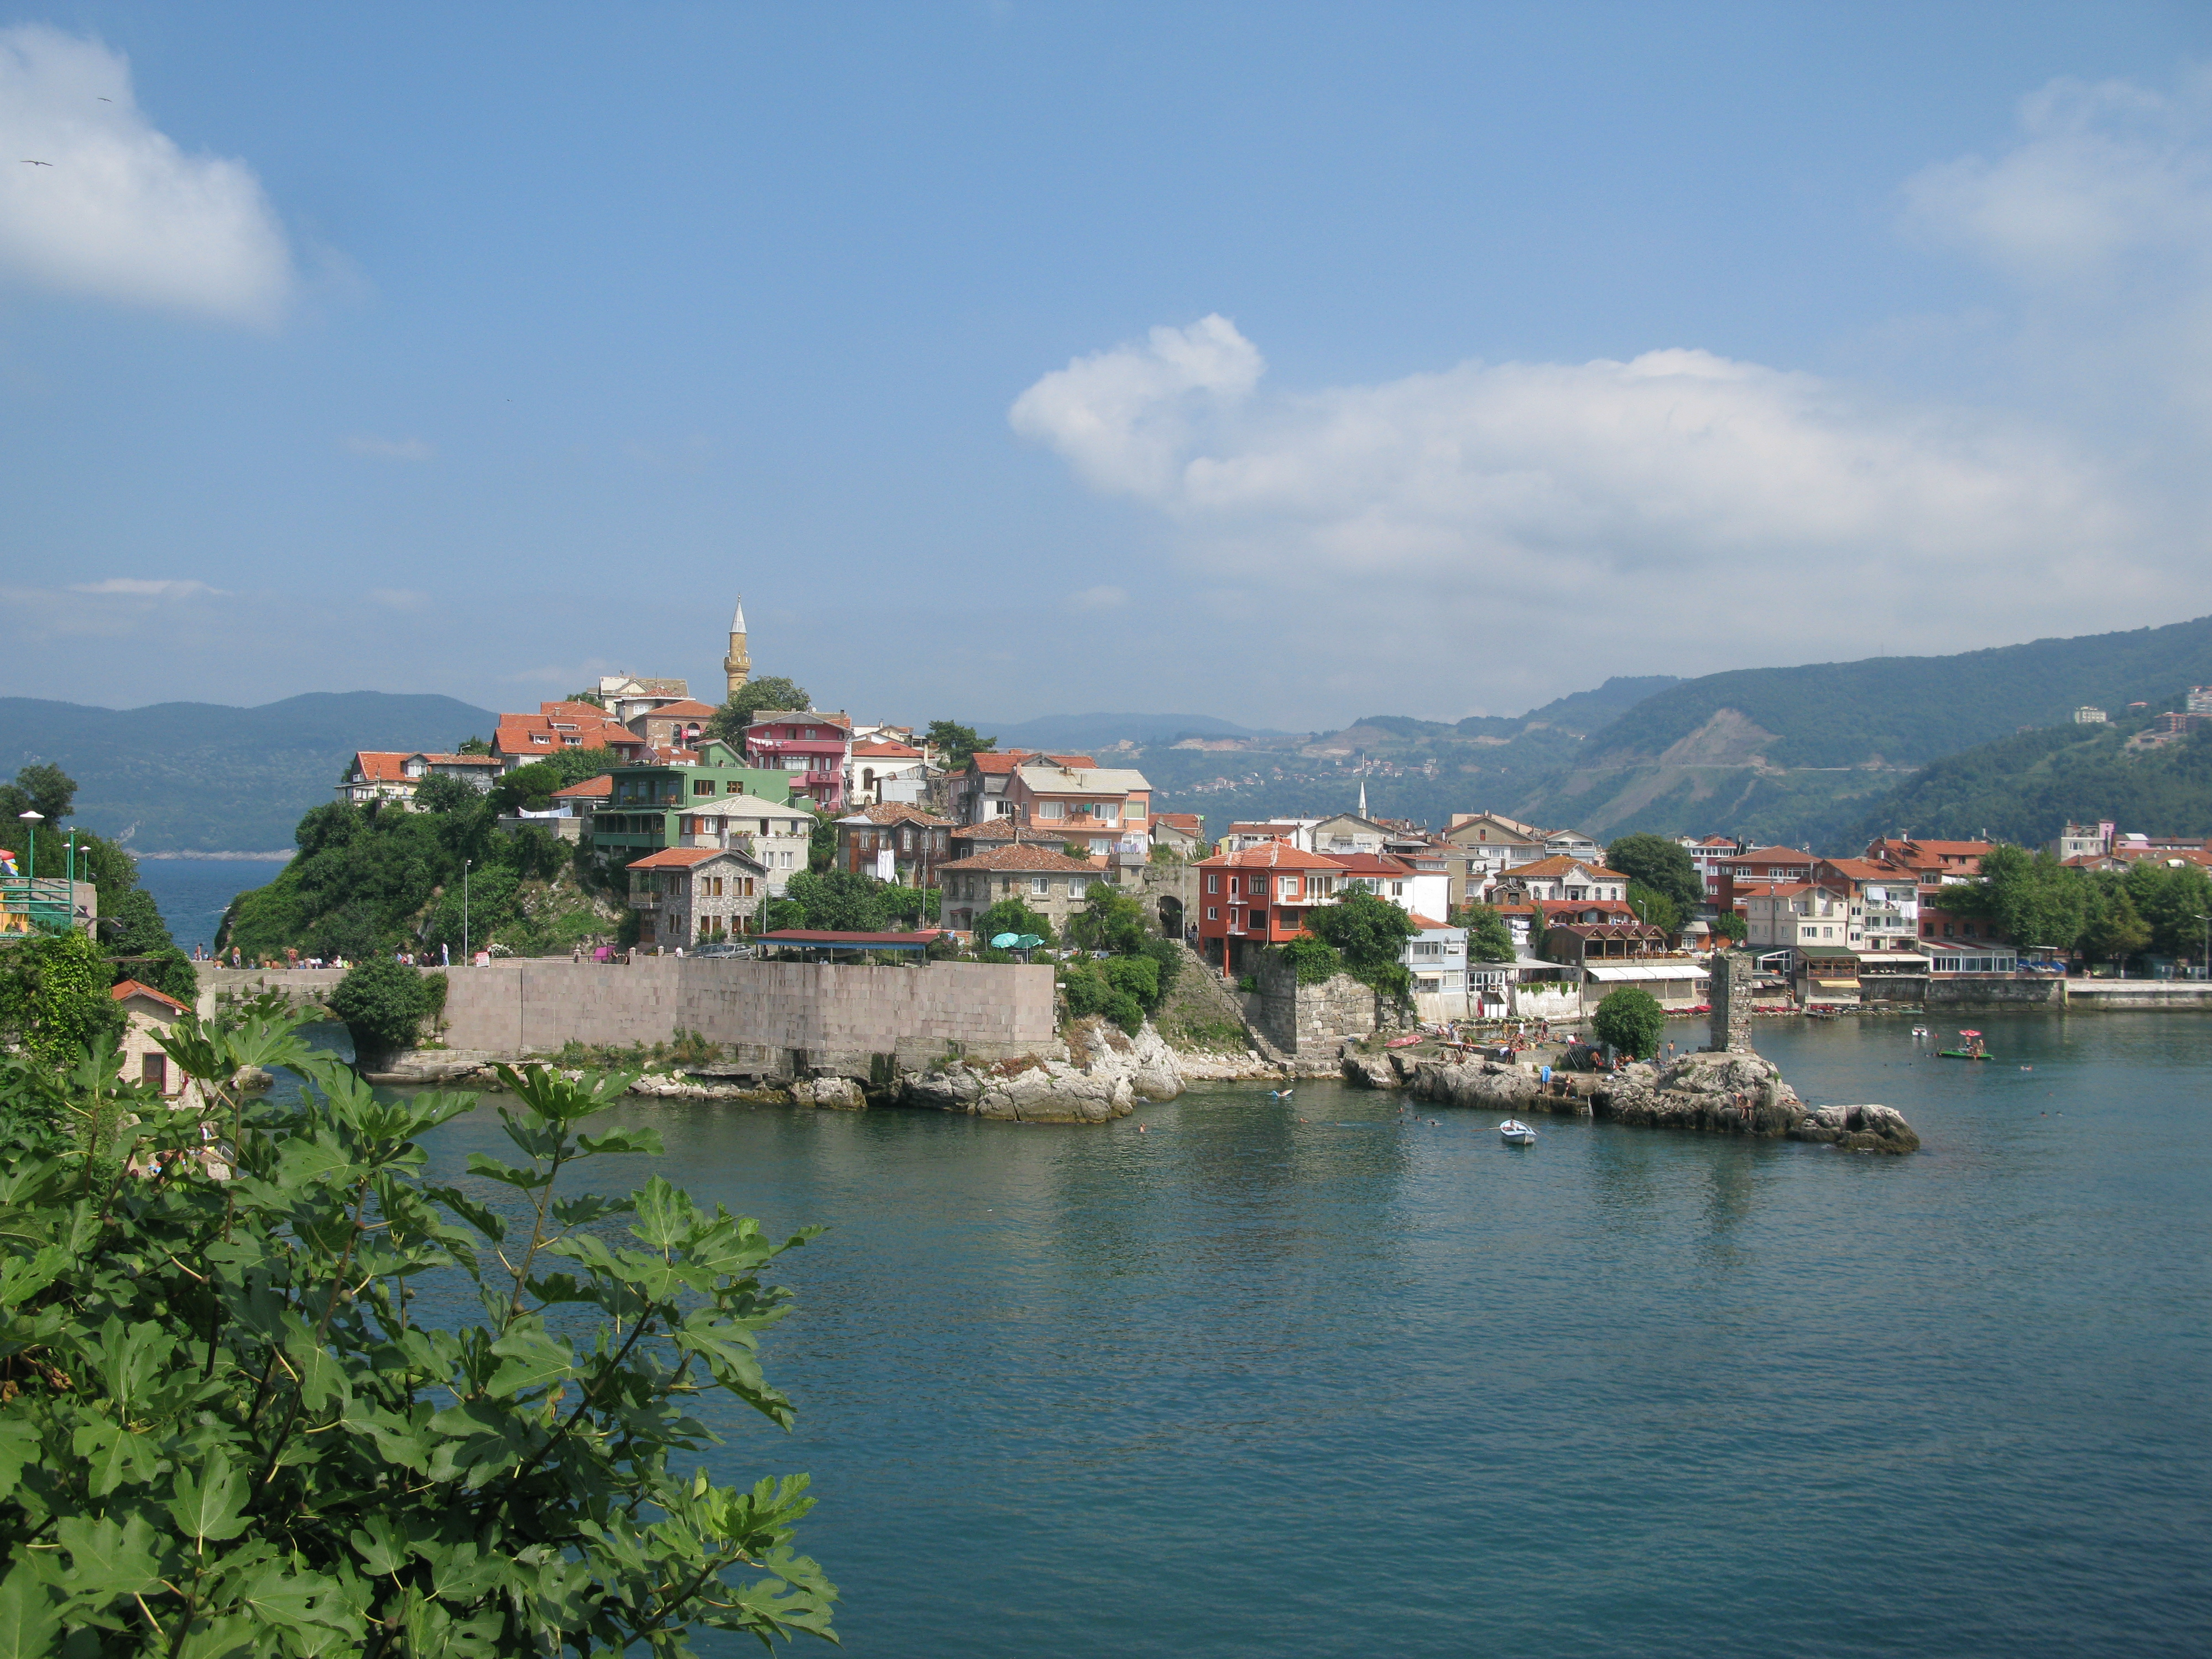 File:Amasra, Turkey, Castle, view from the island.jpg ...